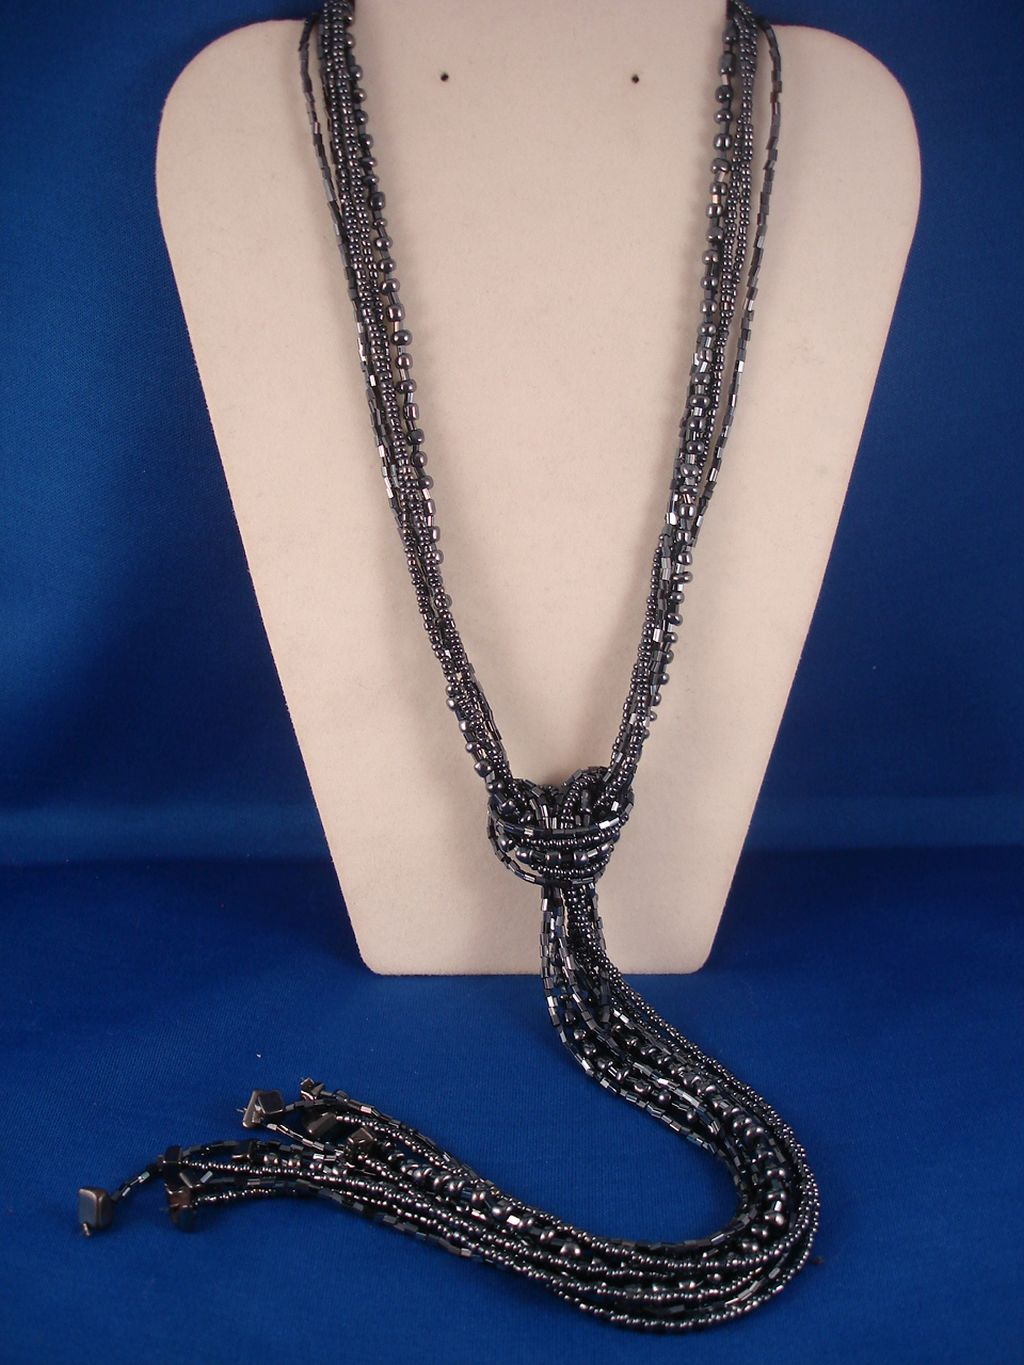 Hematite Beads & Genuine Stones Contemporary Knot Necklace